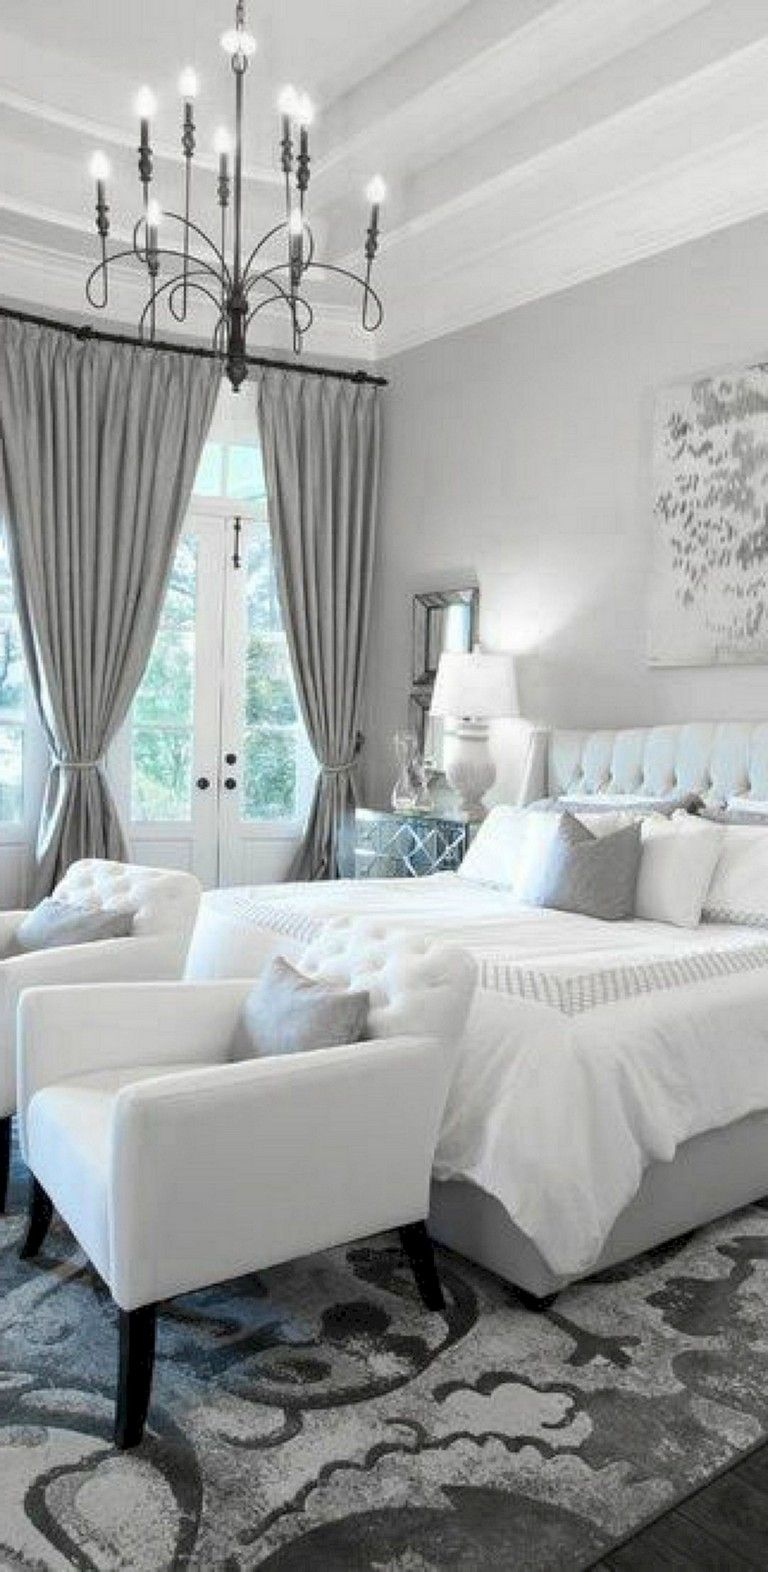 125 Top Diy Rustic And Romantic Master Bedroom On A Budget Ideas Bedroom Interior Gray Master Bedroom White Bedroom Decor